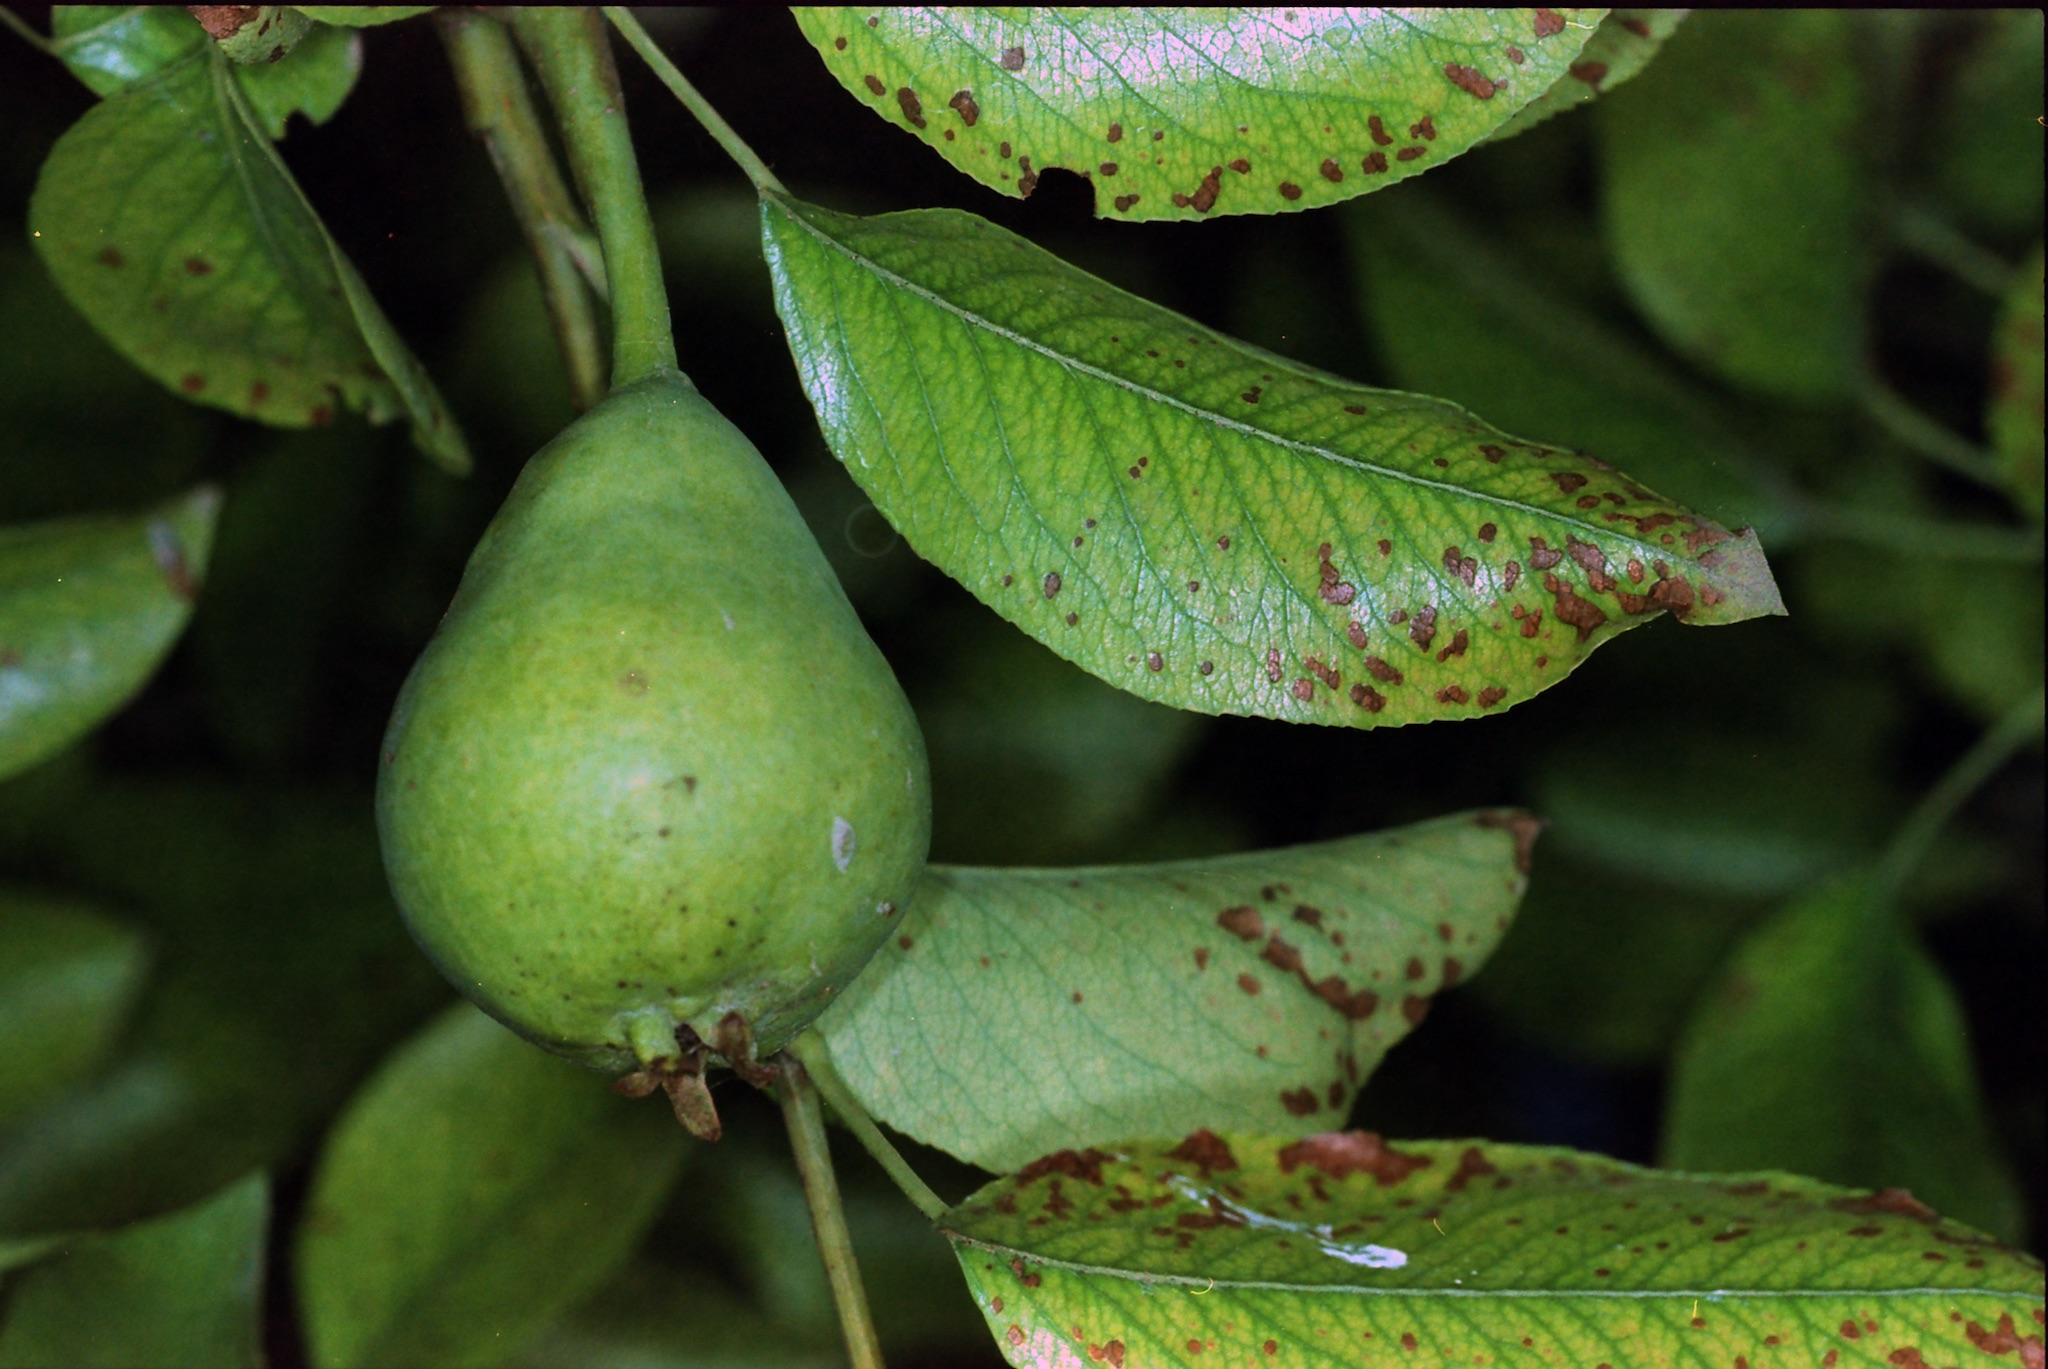 Looks like we'll have pears this year. No idea what that circle is.